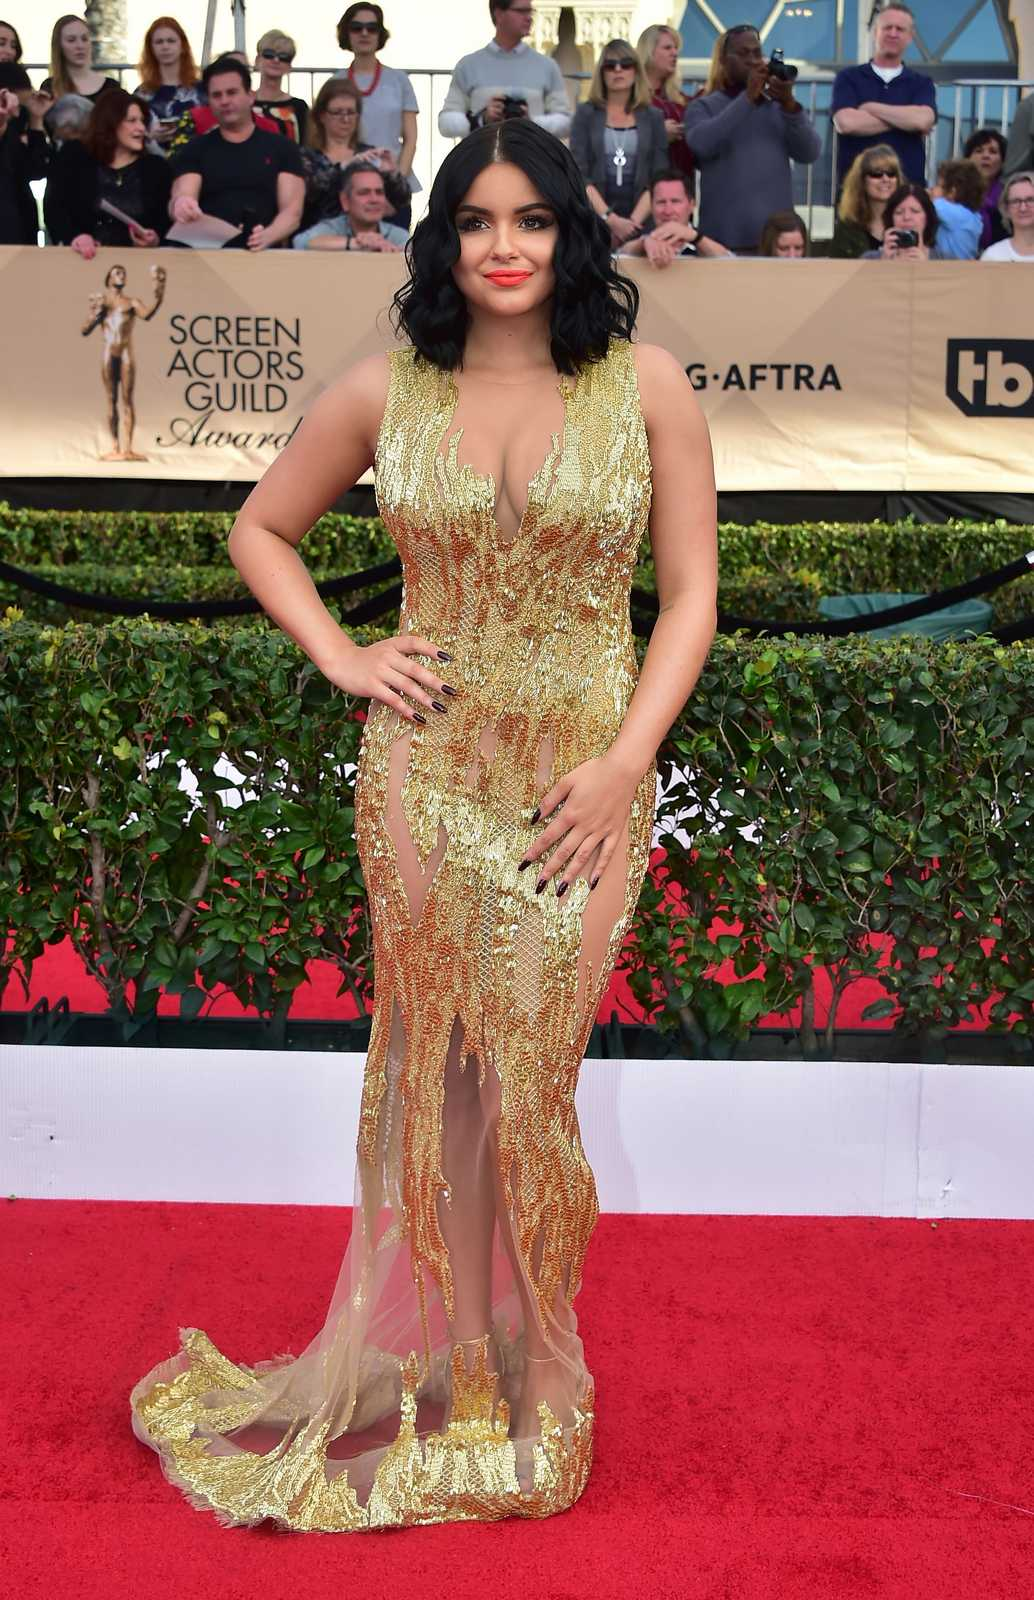 Ariel Winter shows off curves in semi sheer gown at the 2017 SAG Awards